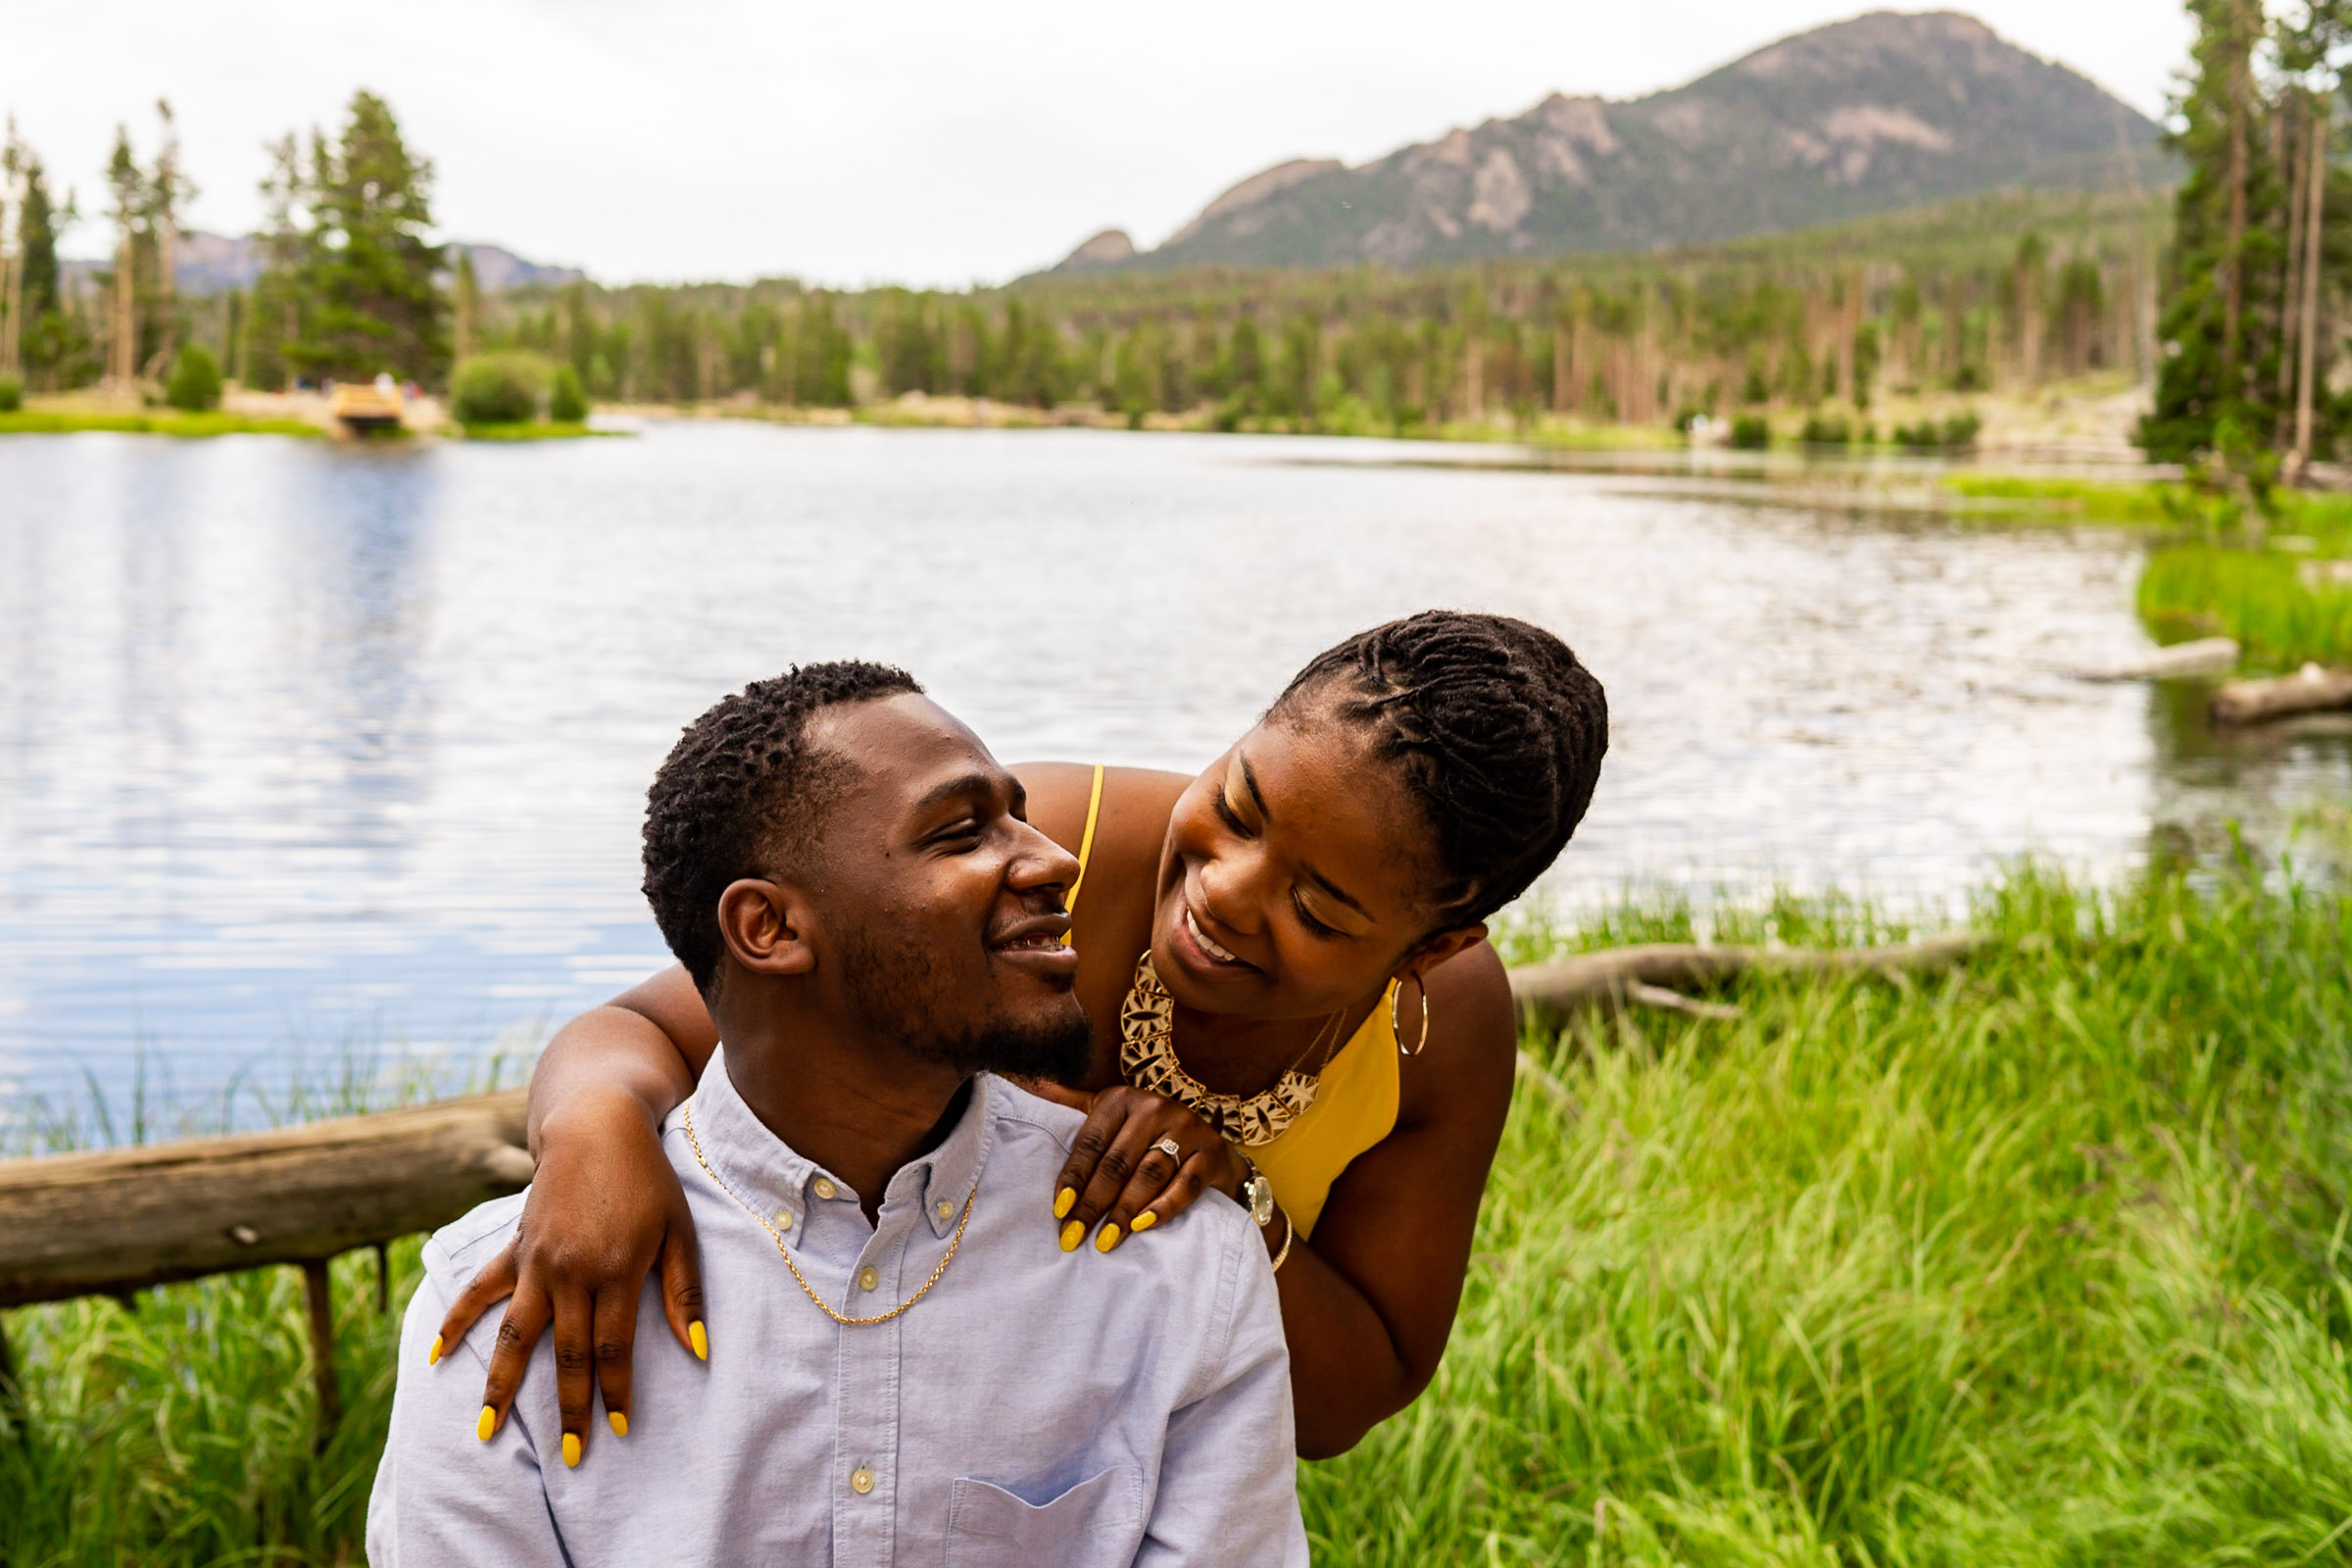 A woman's arms on her man's shoulder as he sits in front of a mountain lake. Photo by Gabby Jockers Photography. Rocky mountain national park engagement photography, Rocky mountain national park engagement photos, Rocky mountain national park engagement session, sprague lake engagement photos, sprague lake engagement session, estes park engagement, estes park engagement photos, adventure photos, adventure session, couples photos